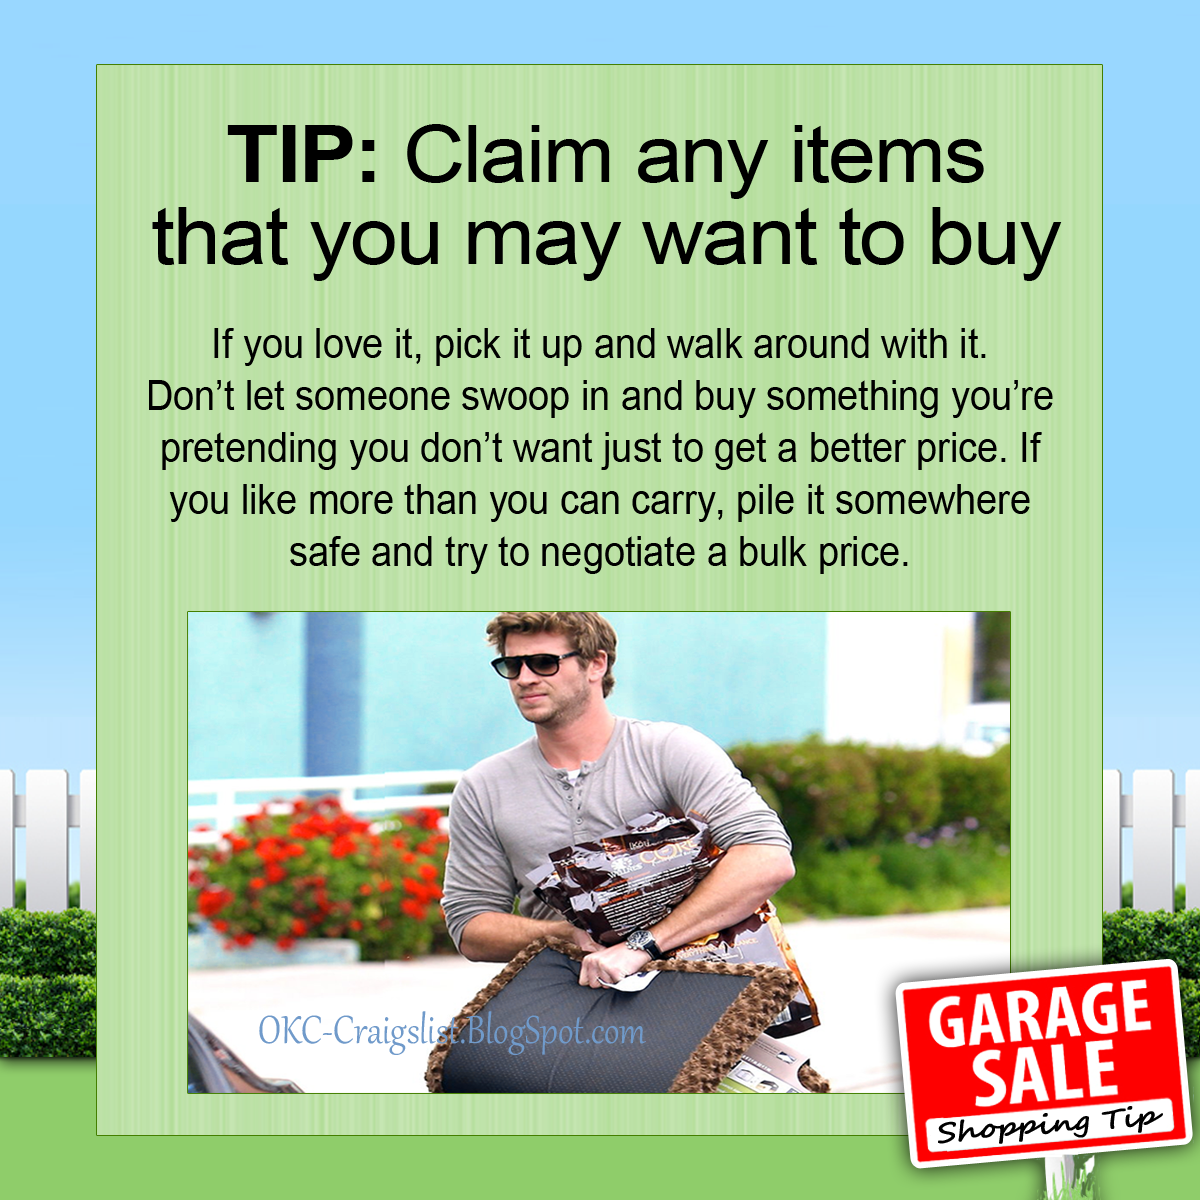 GARAGE SALE TIP: Be the first to claim stuff you may want to buy